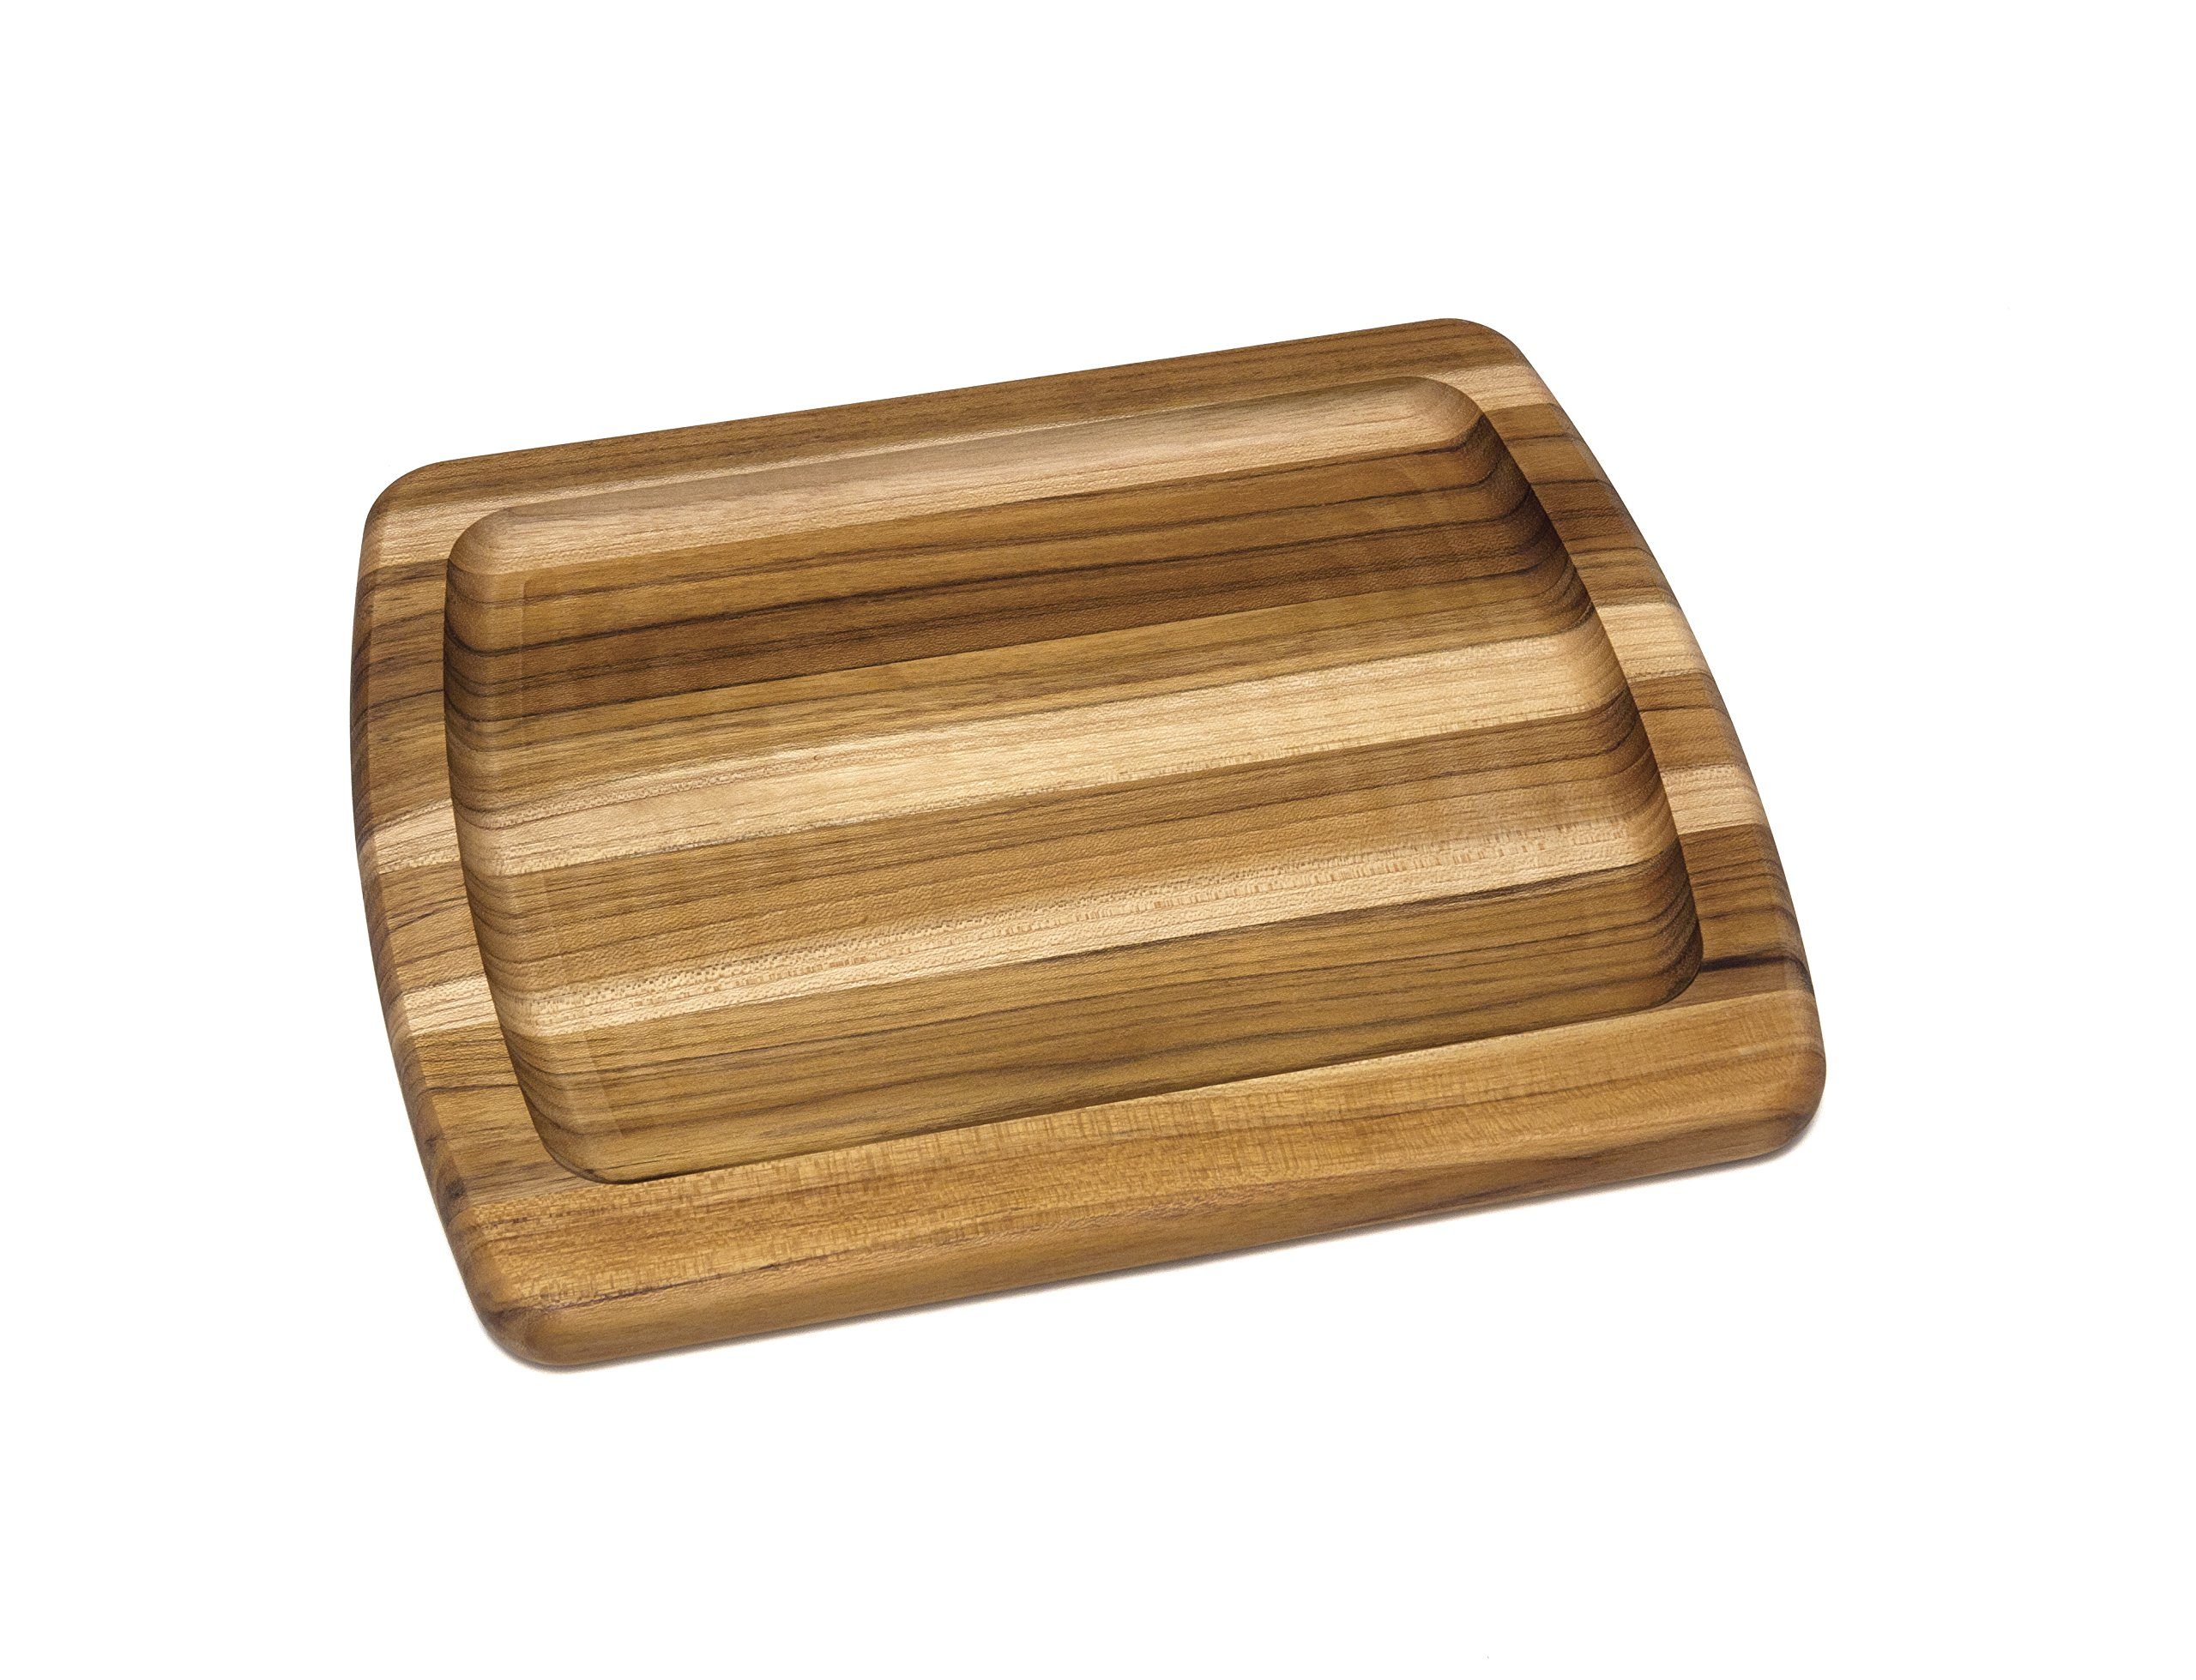 Lipper International 7223 Teak Wood Edge Grain Serving Platter, Small